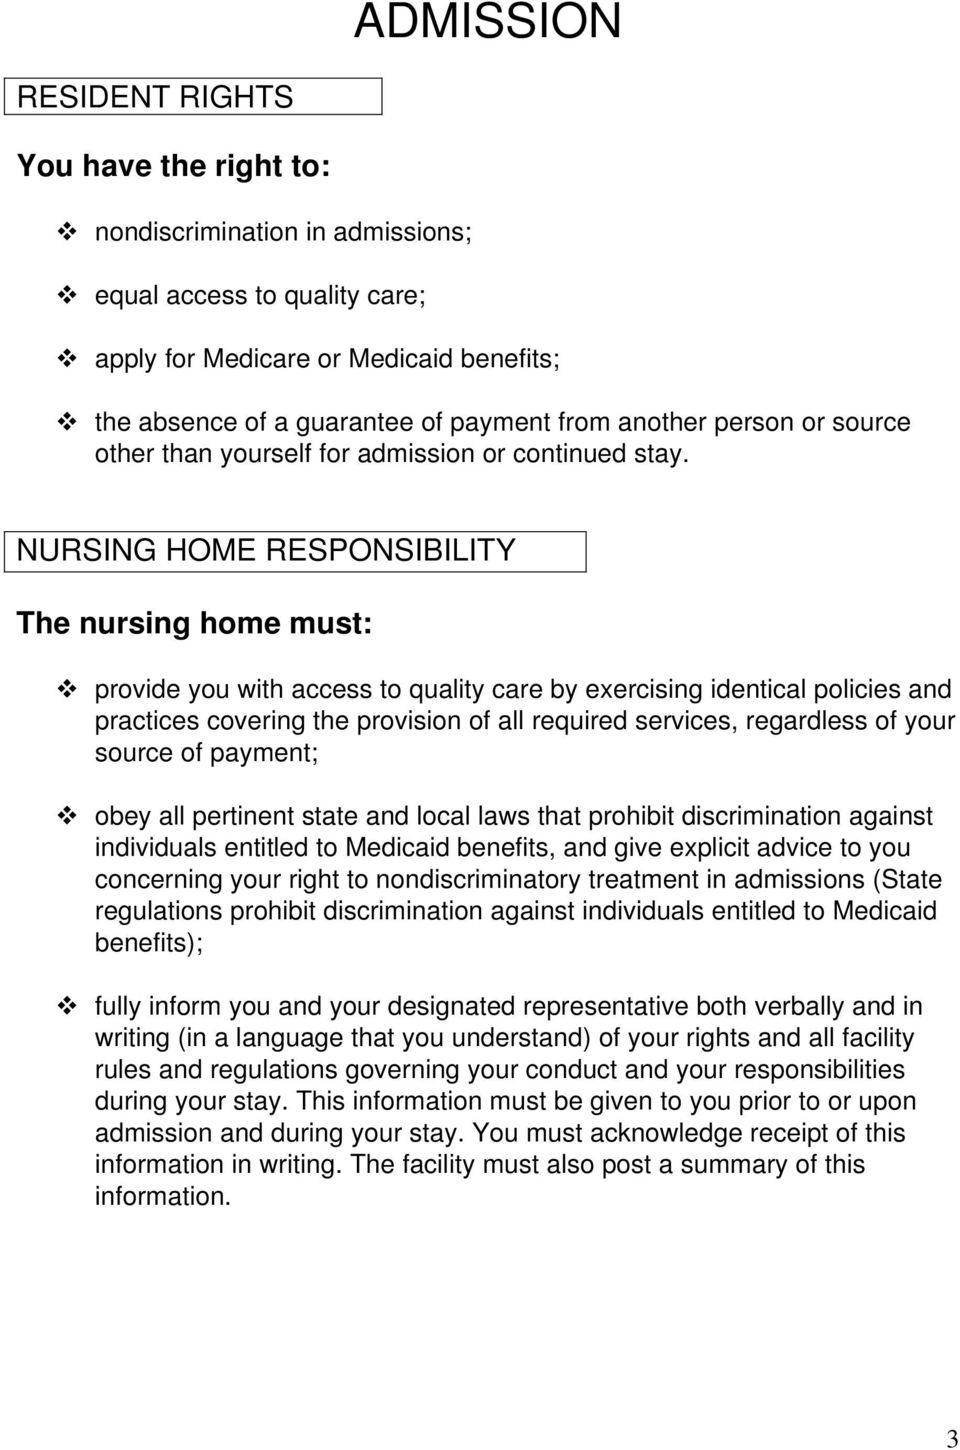 NURSING HOME RESPONSIBILITY The nursing home must: provide you with access to quality care by exercising identical policies and practices covering the provision of all required services, regardless